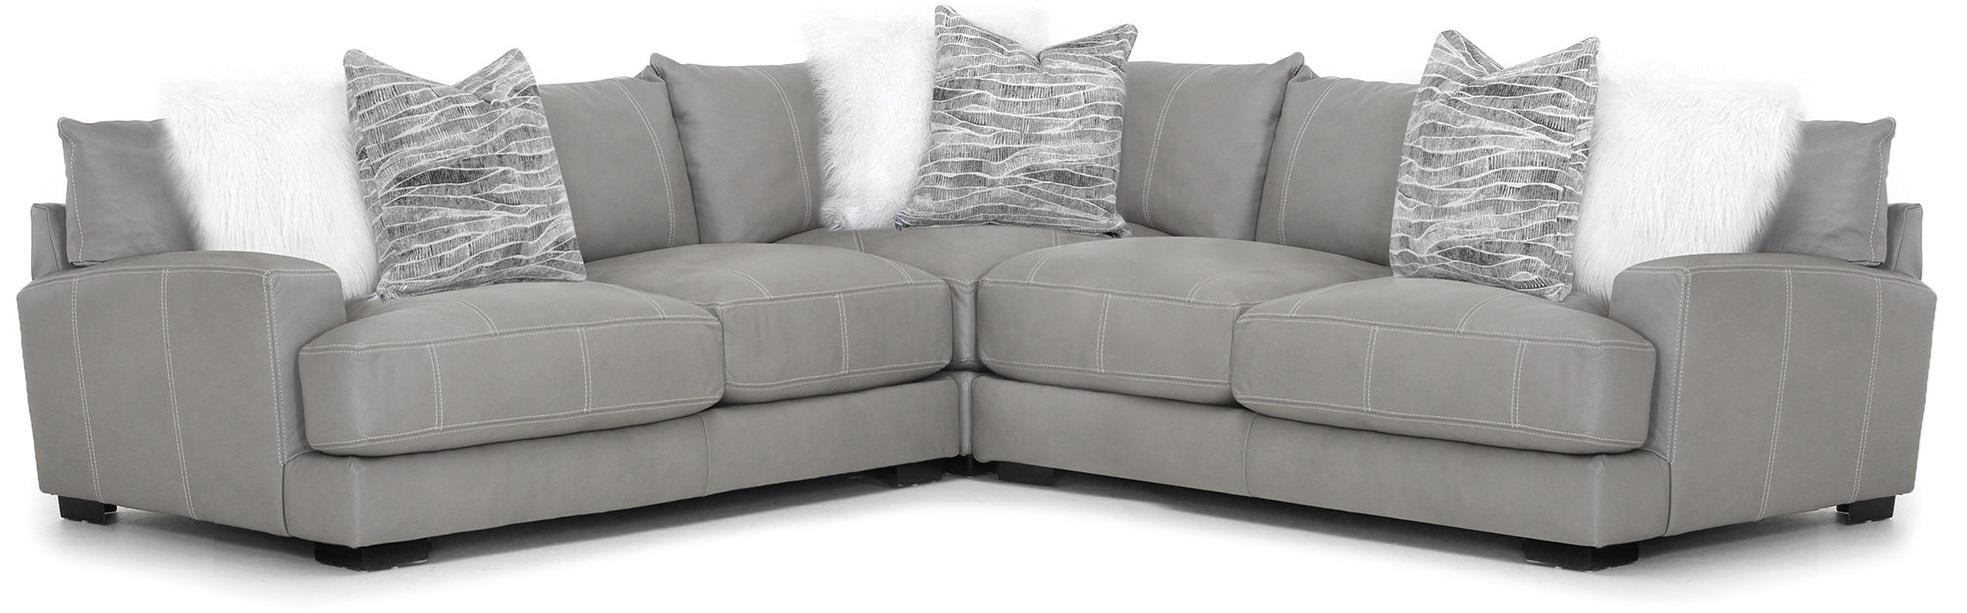 Antonia Leather Sectional at Bennett's Furniture and Mattresses